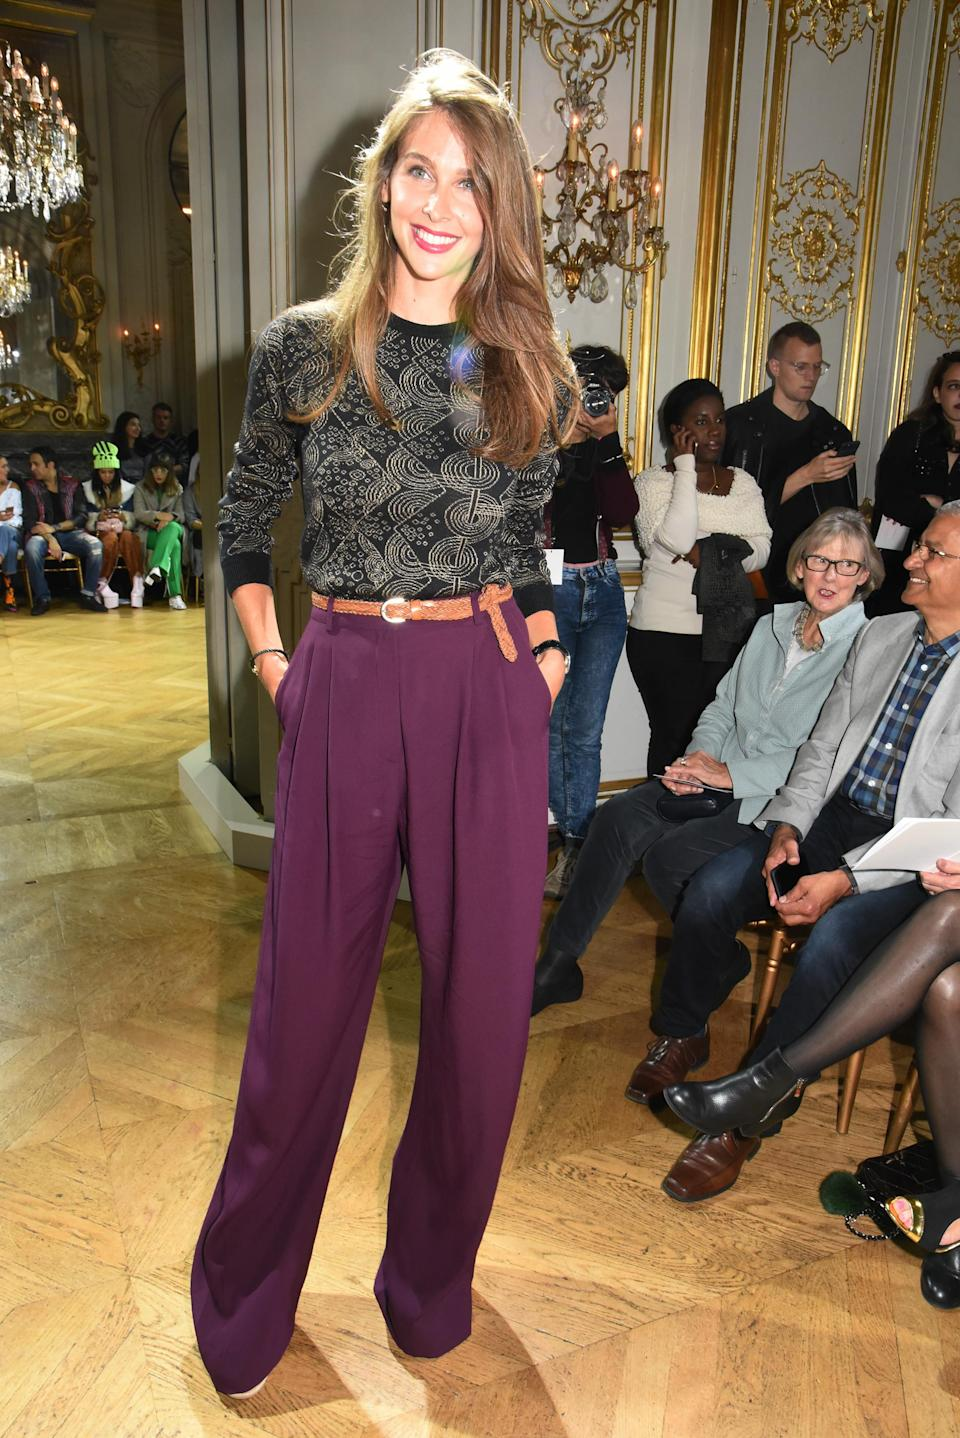 <p>Ancienne mannequin, Ophélie Meunier a retrouvé l'effervescence des défilés ce dimanche. L'animatrice est venue admirer la nouvelle collection Galliano, essentiellement dominée par le satin et la transparence. (Getty) </p>